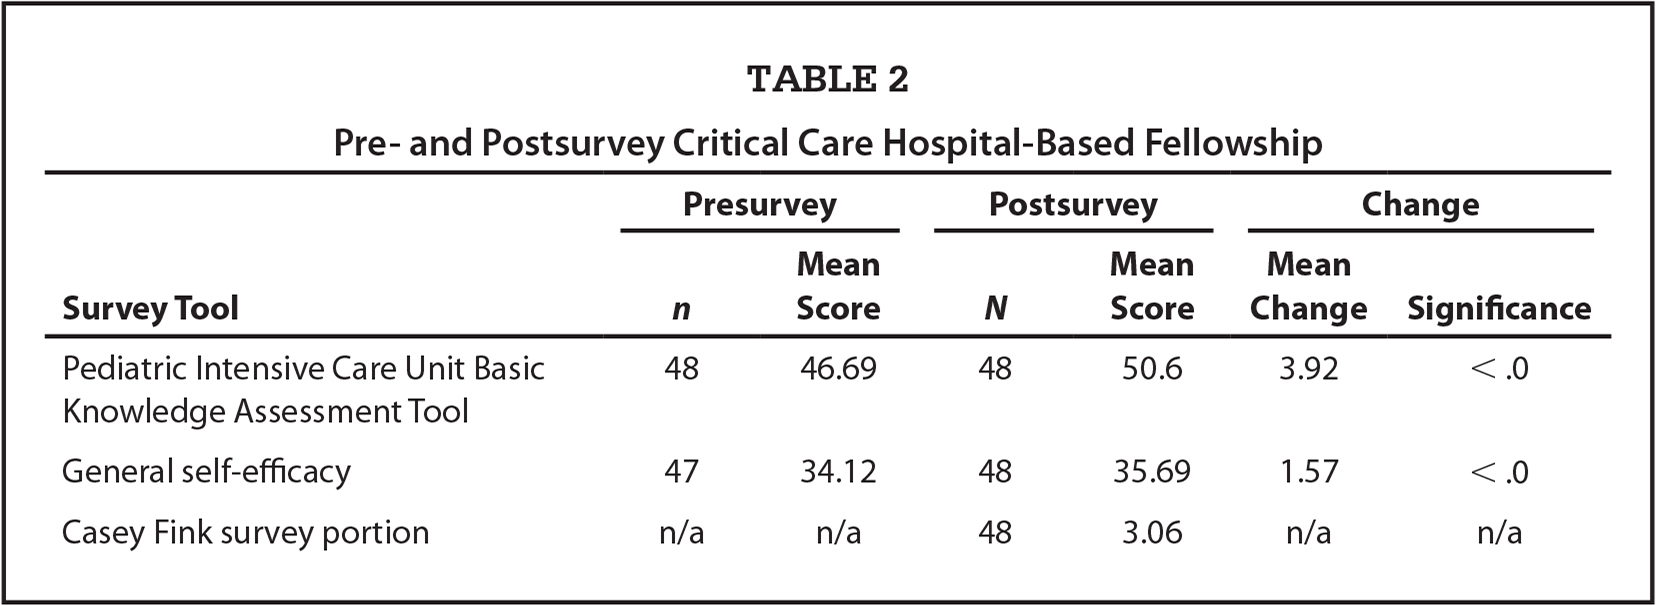 Pre- and Postsurvey Critical Care Hospital-Based Fellowship